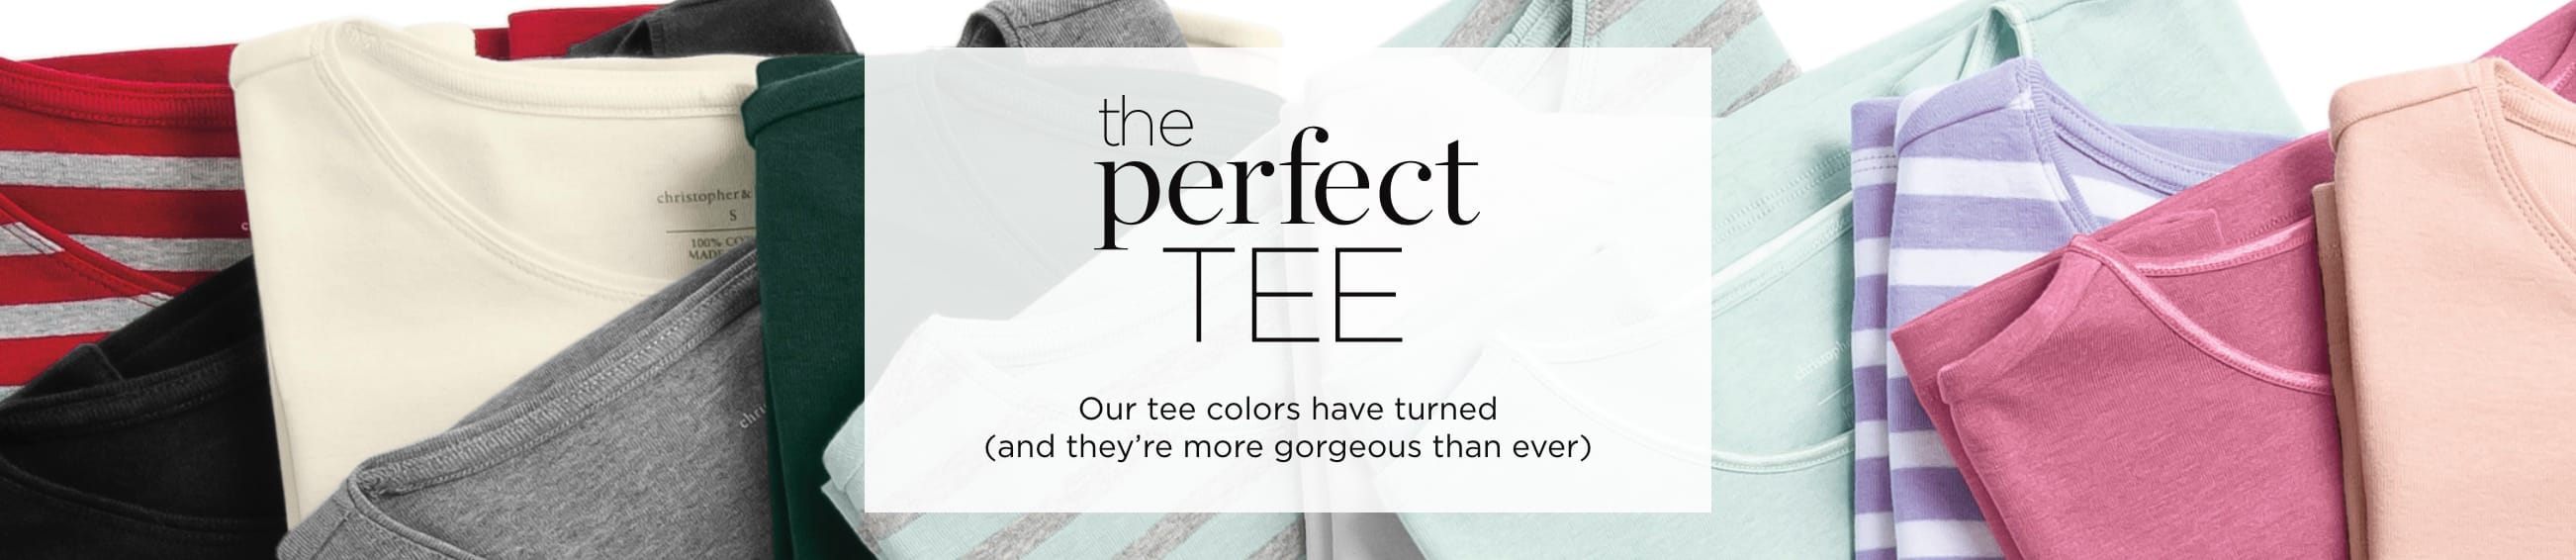 The Perfect Tee. Our tee colors have turned (and they're more gorgeous than ever)..